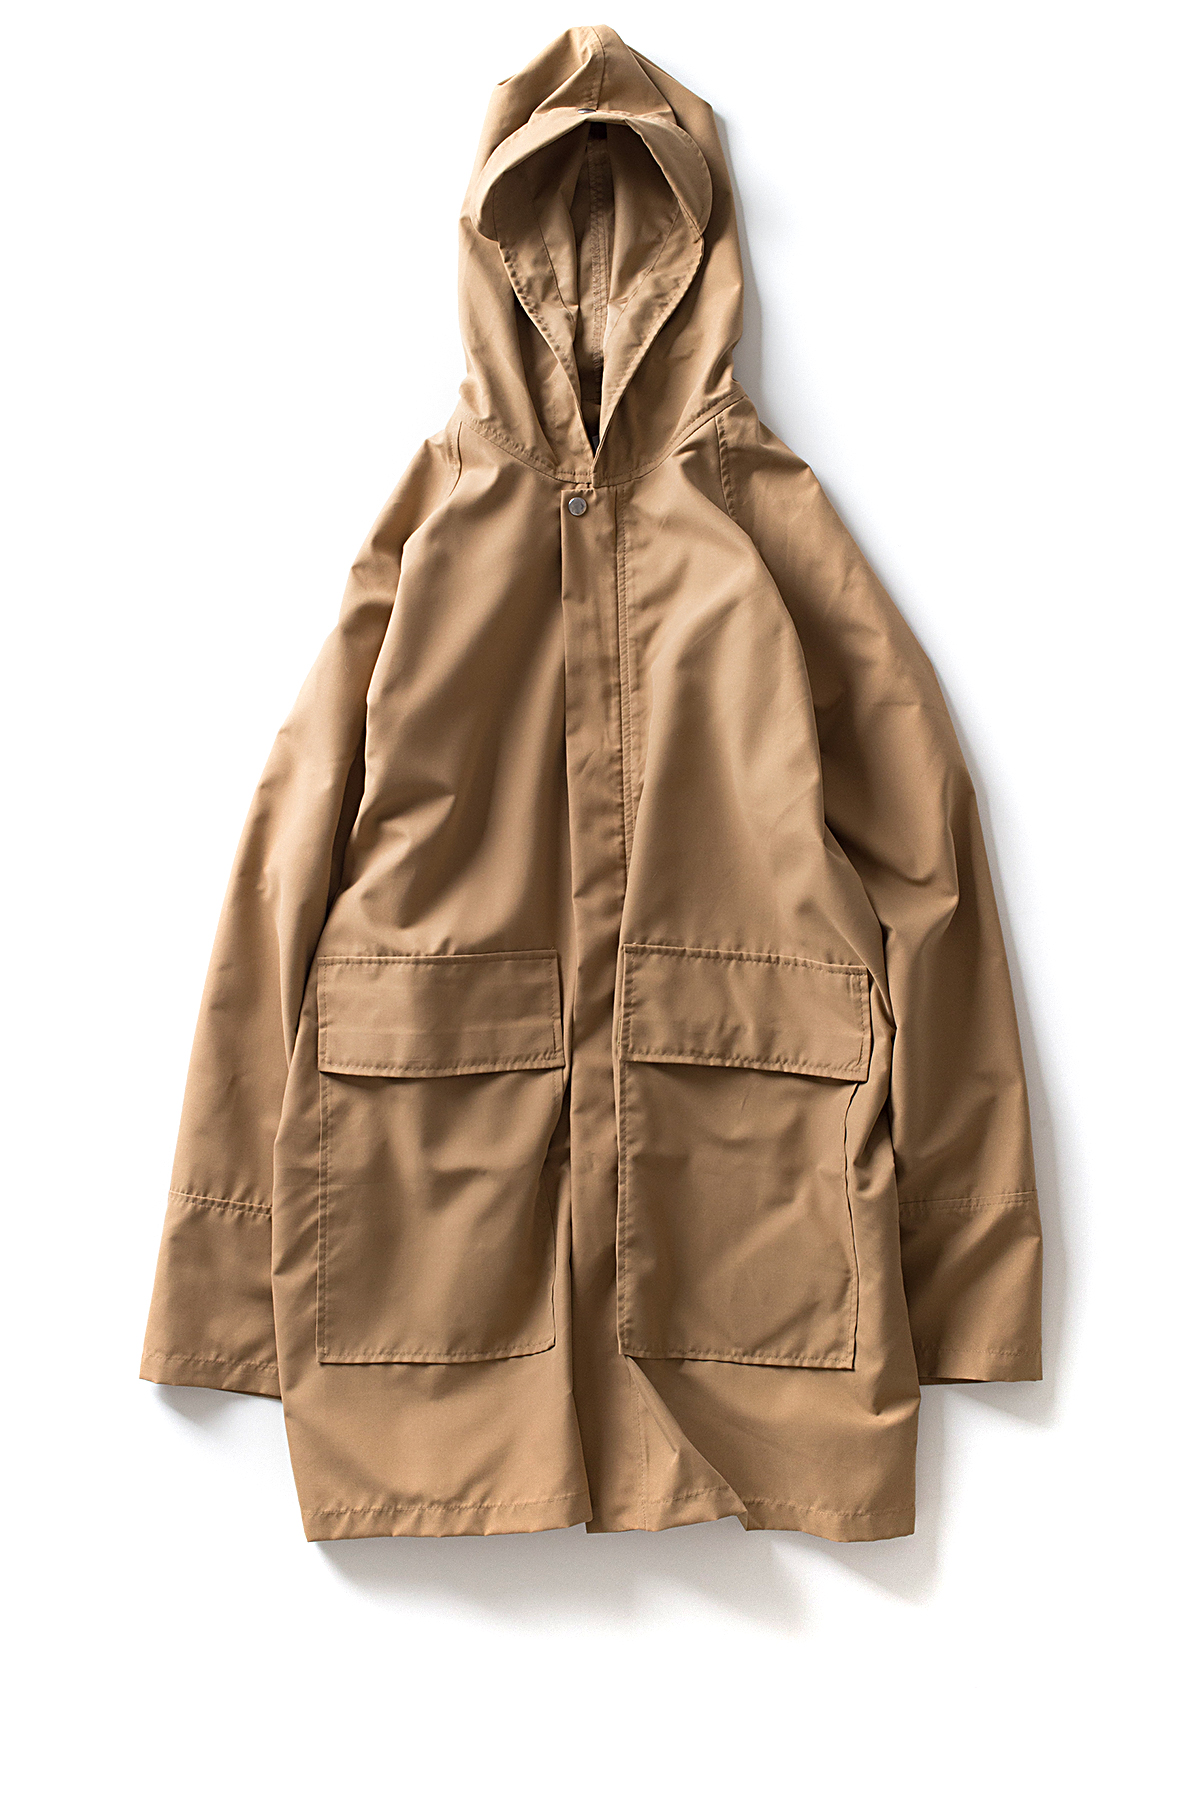 CAMO : Original Rain Jacket (Tech Fiber Khaki)